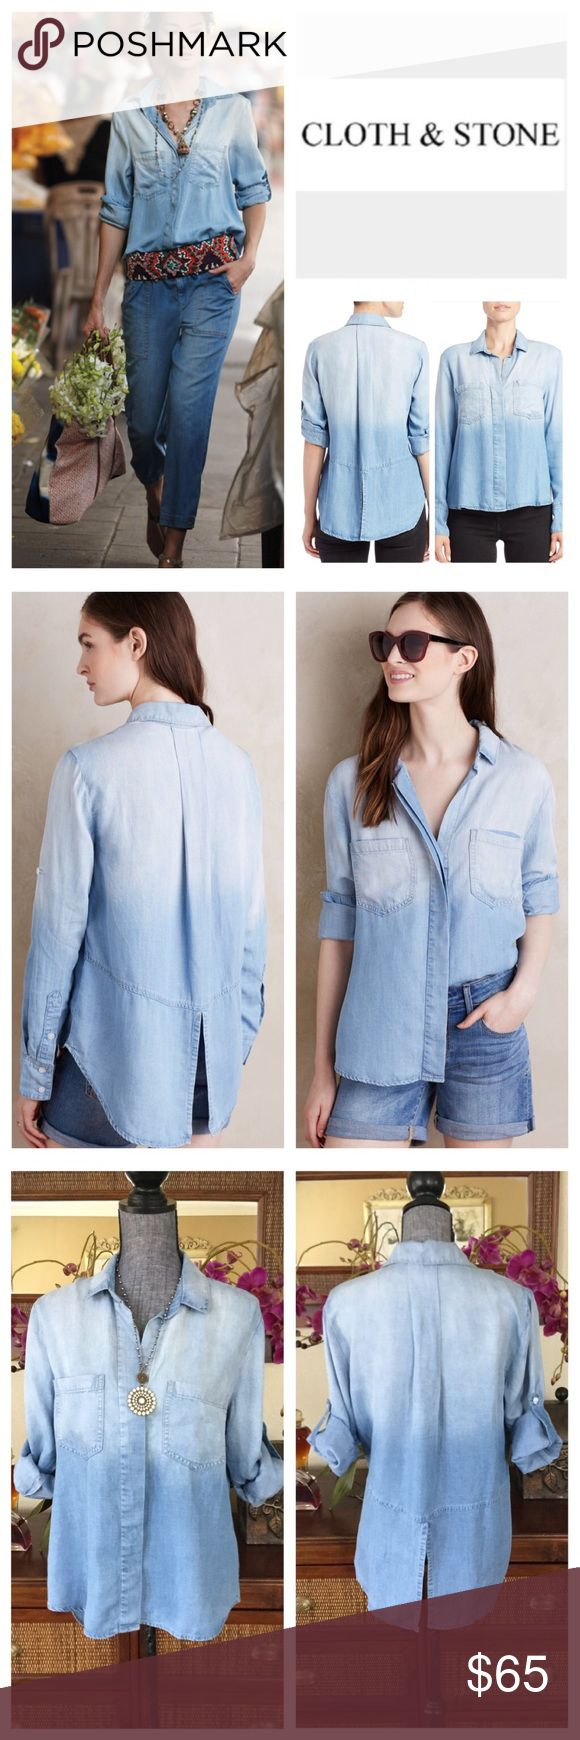 """🆕Anthropologie Cloth & Stone Ombré Splittail.NWOT 🆕 Anthropologie Cloth & Stone Chambray Ombré Button Down Split Tail Shirt, 100% tencel, machine washable, 19.5"""" armpit to armpit (39"""" all around), 18.5"""" arm inseam, 25"""" shortest front length, 28"""" longest back length, concealed button front, ombré fading, spread collar, two breast pockets, back pleat, rolled tab sleeve, long sleeves, high low hem, split tail, measurements are approx.  New without tag, never worn.  NO TRADES Anthropologie…"""